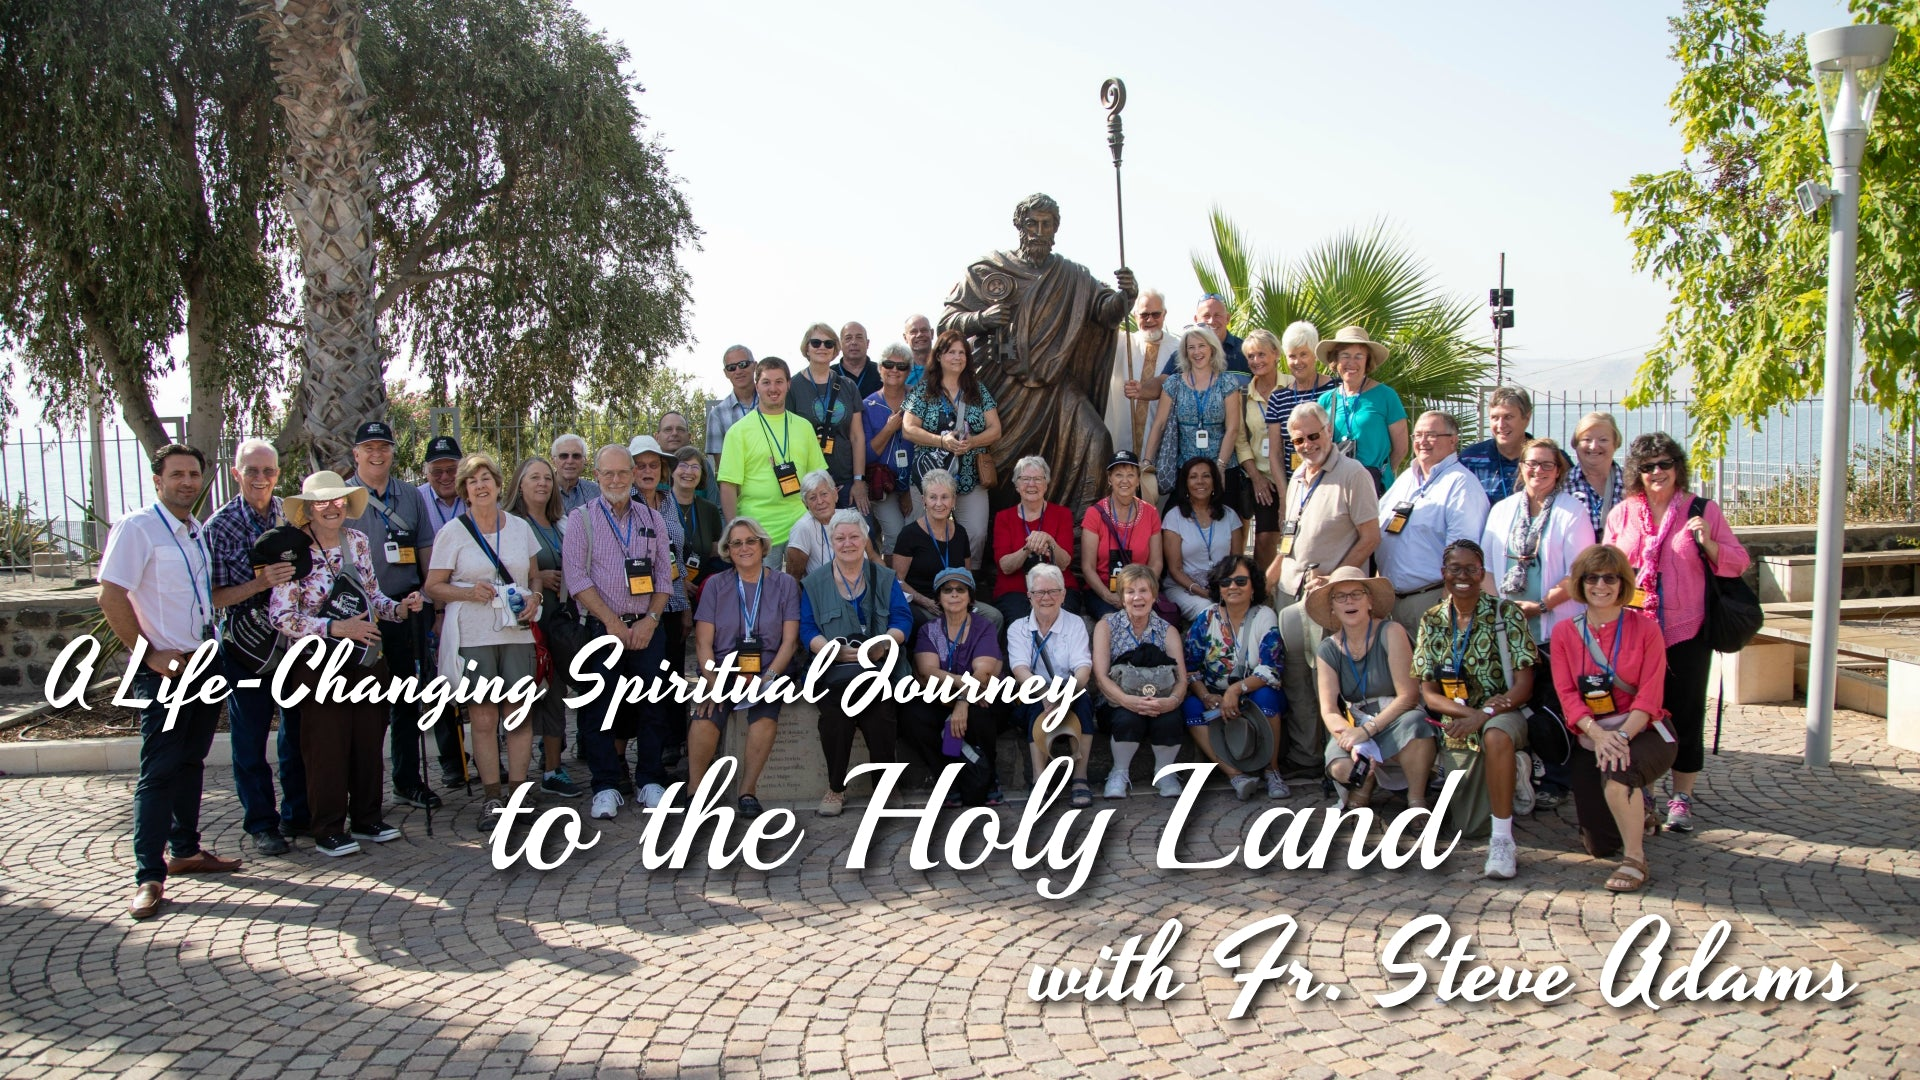 A Life-Changing Spiritual Journey to the Holy Land with Fr. Steve Adams